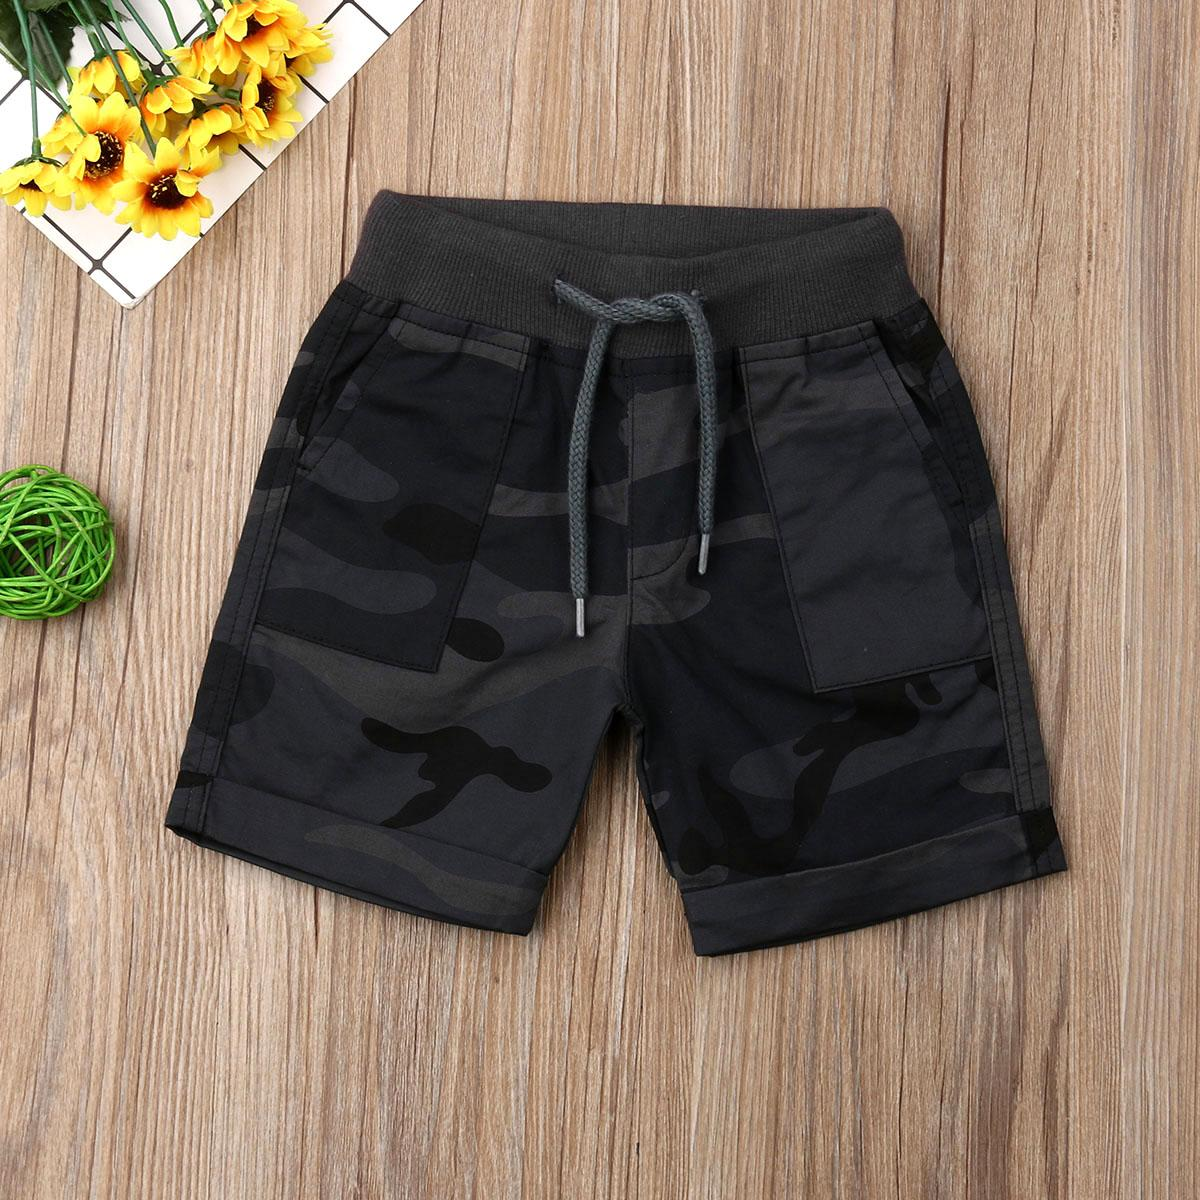 1-6Years Newborn Kid Baby Boys Casual Pants Shorts Bottoms Trousers Sportswear Clothes